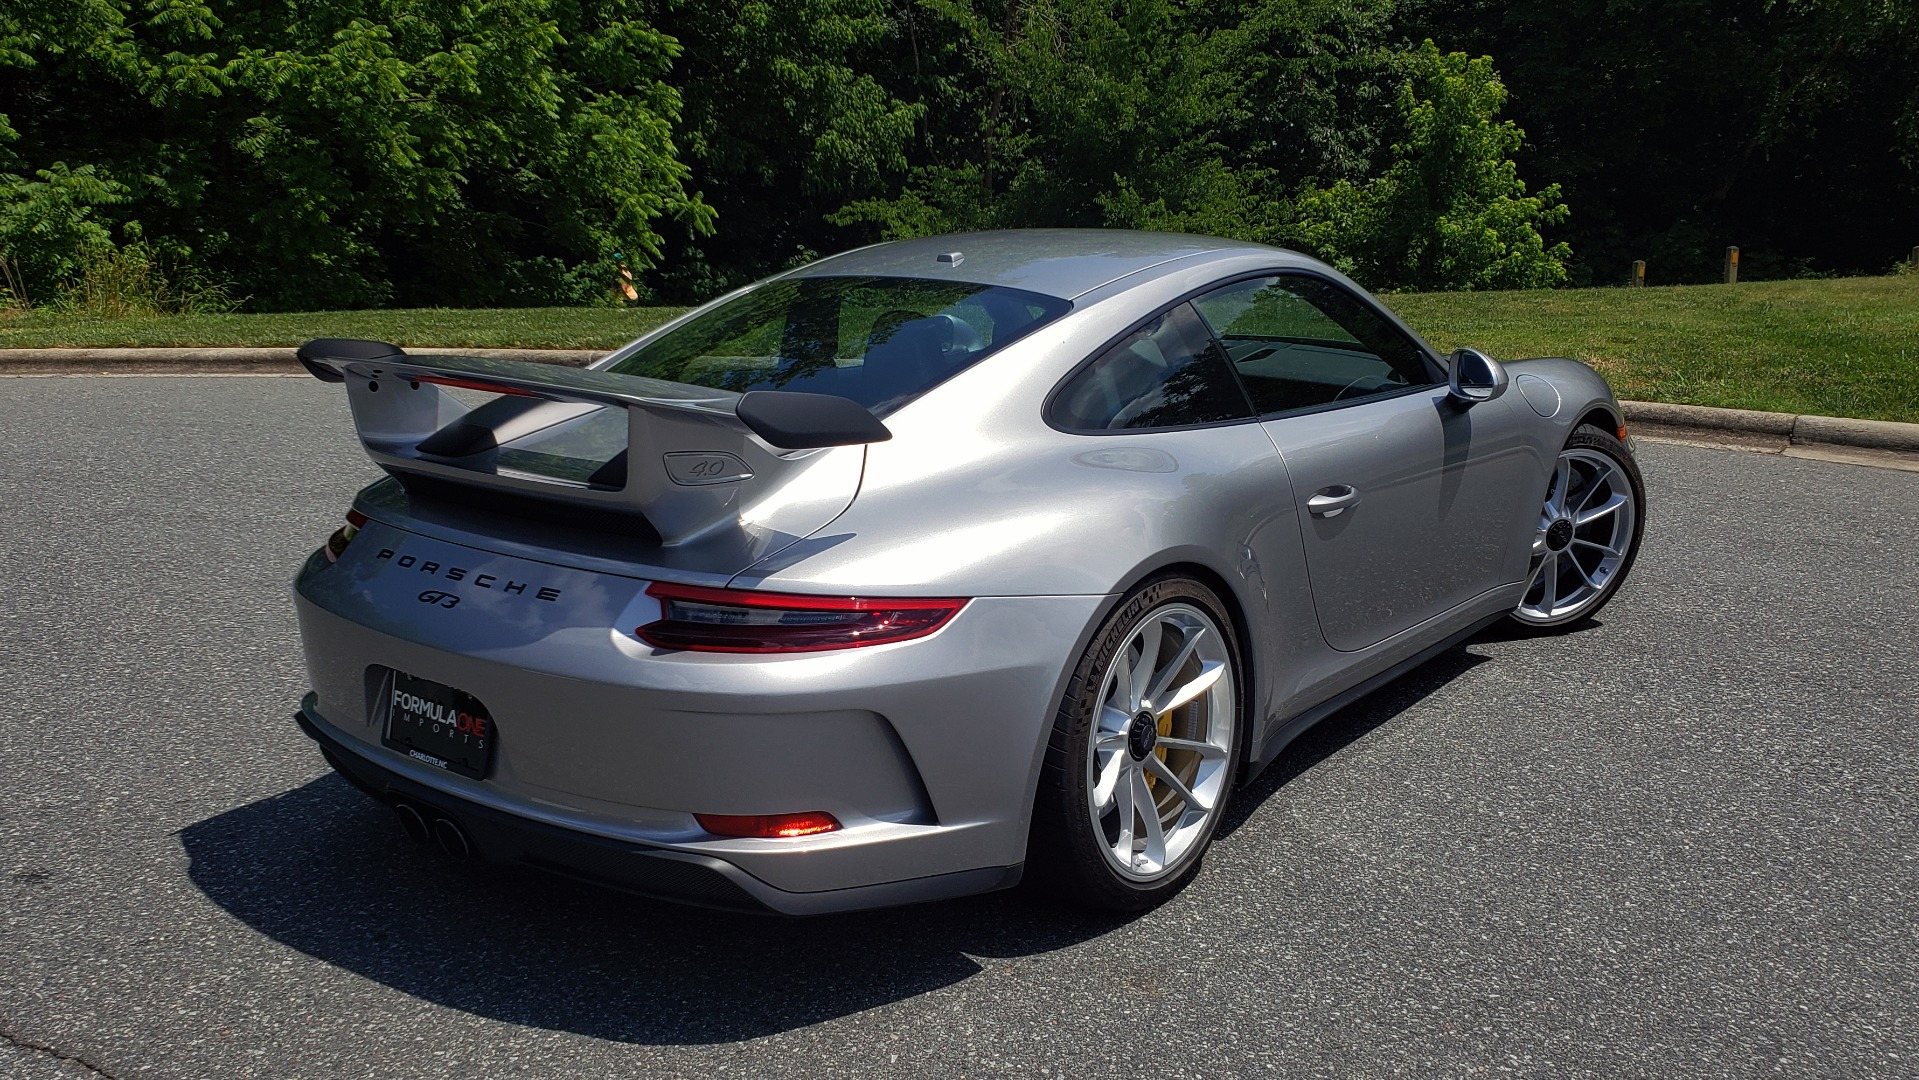 Used 2018 Porsche 911 GT3 4.0L 500HP / 6-SPD MNL / NAV / REARVIEW / PCCB for sale Sold at Formula Imports in Charlotte NC 28227 6